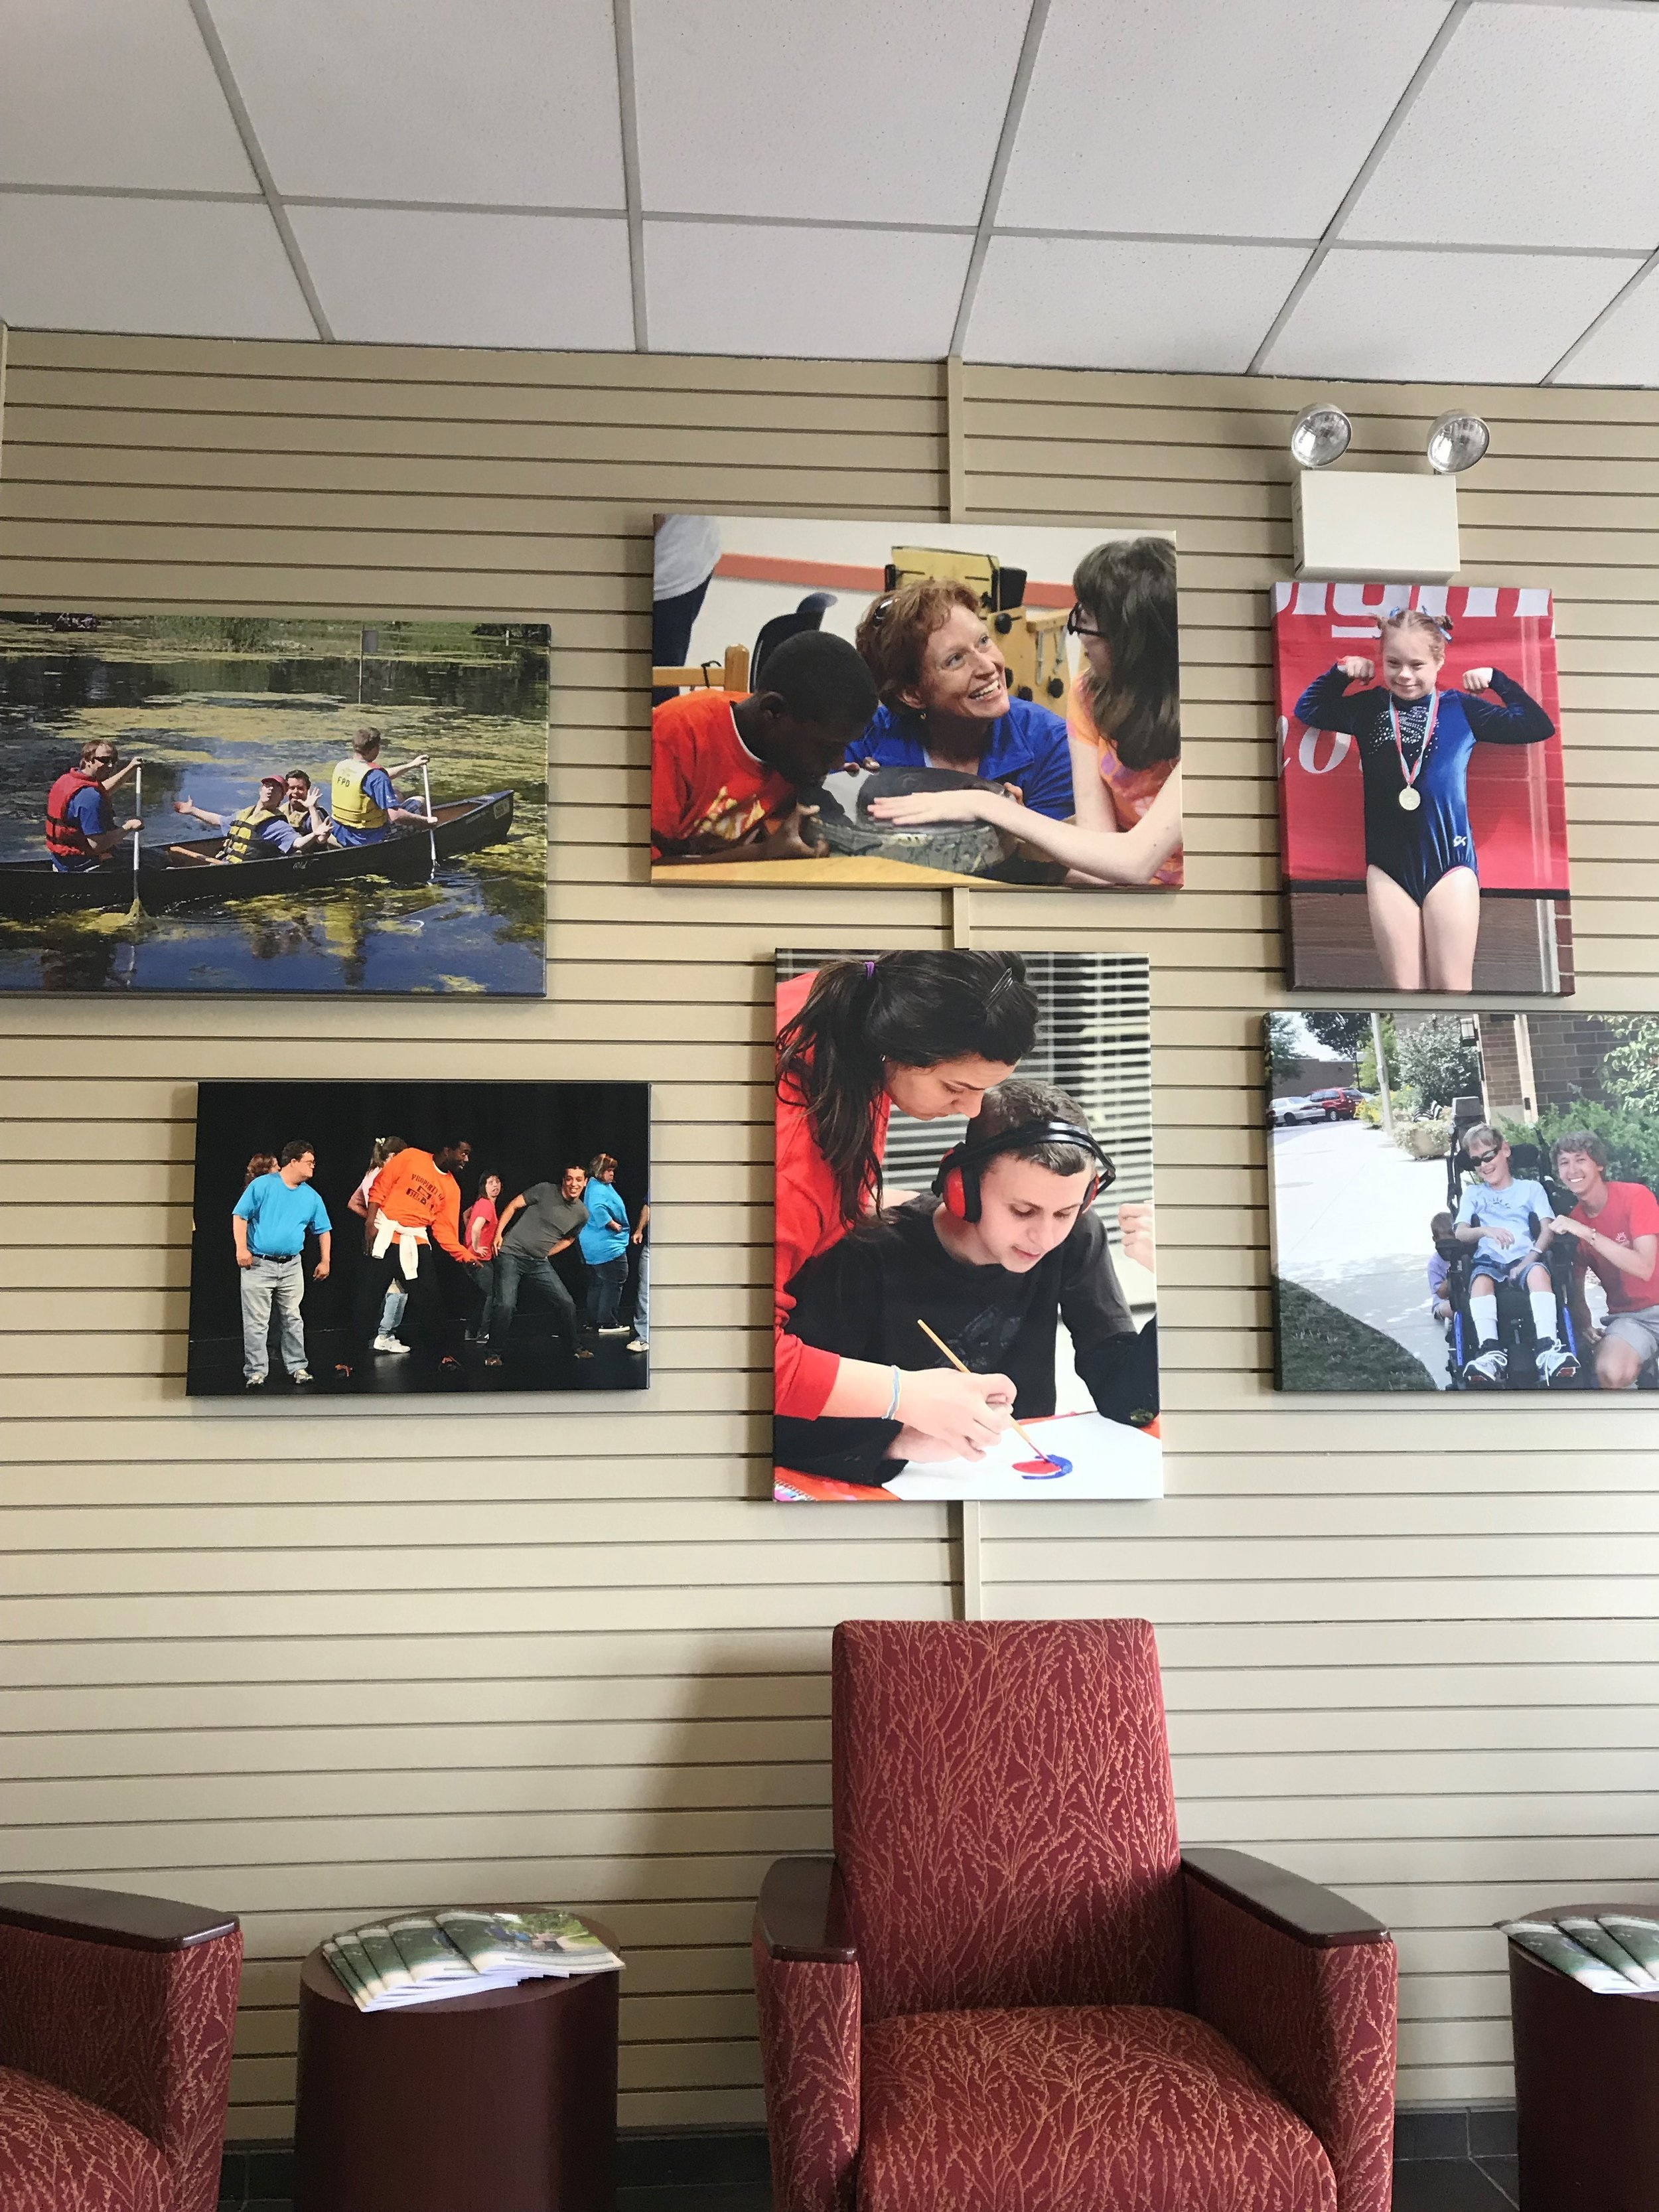 Photos of the various activities WDSRA offers welcome visitors to the agency's Carol Stream office